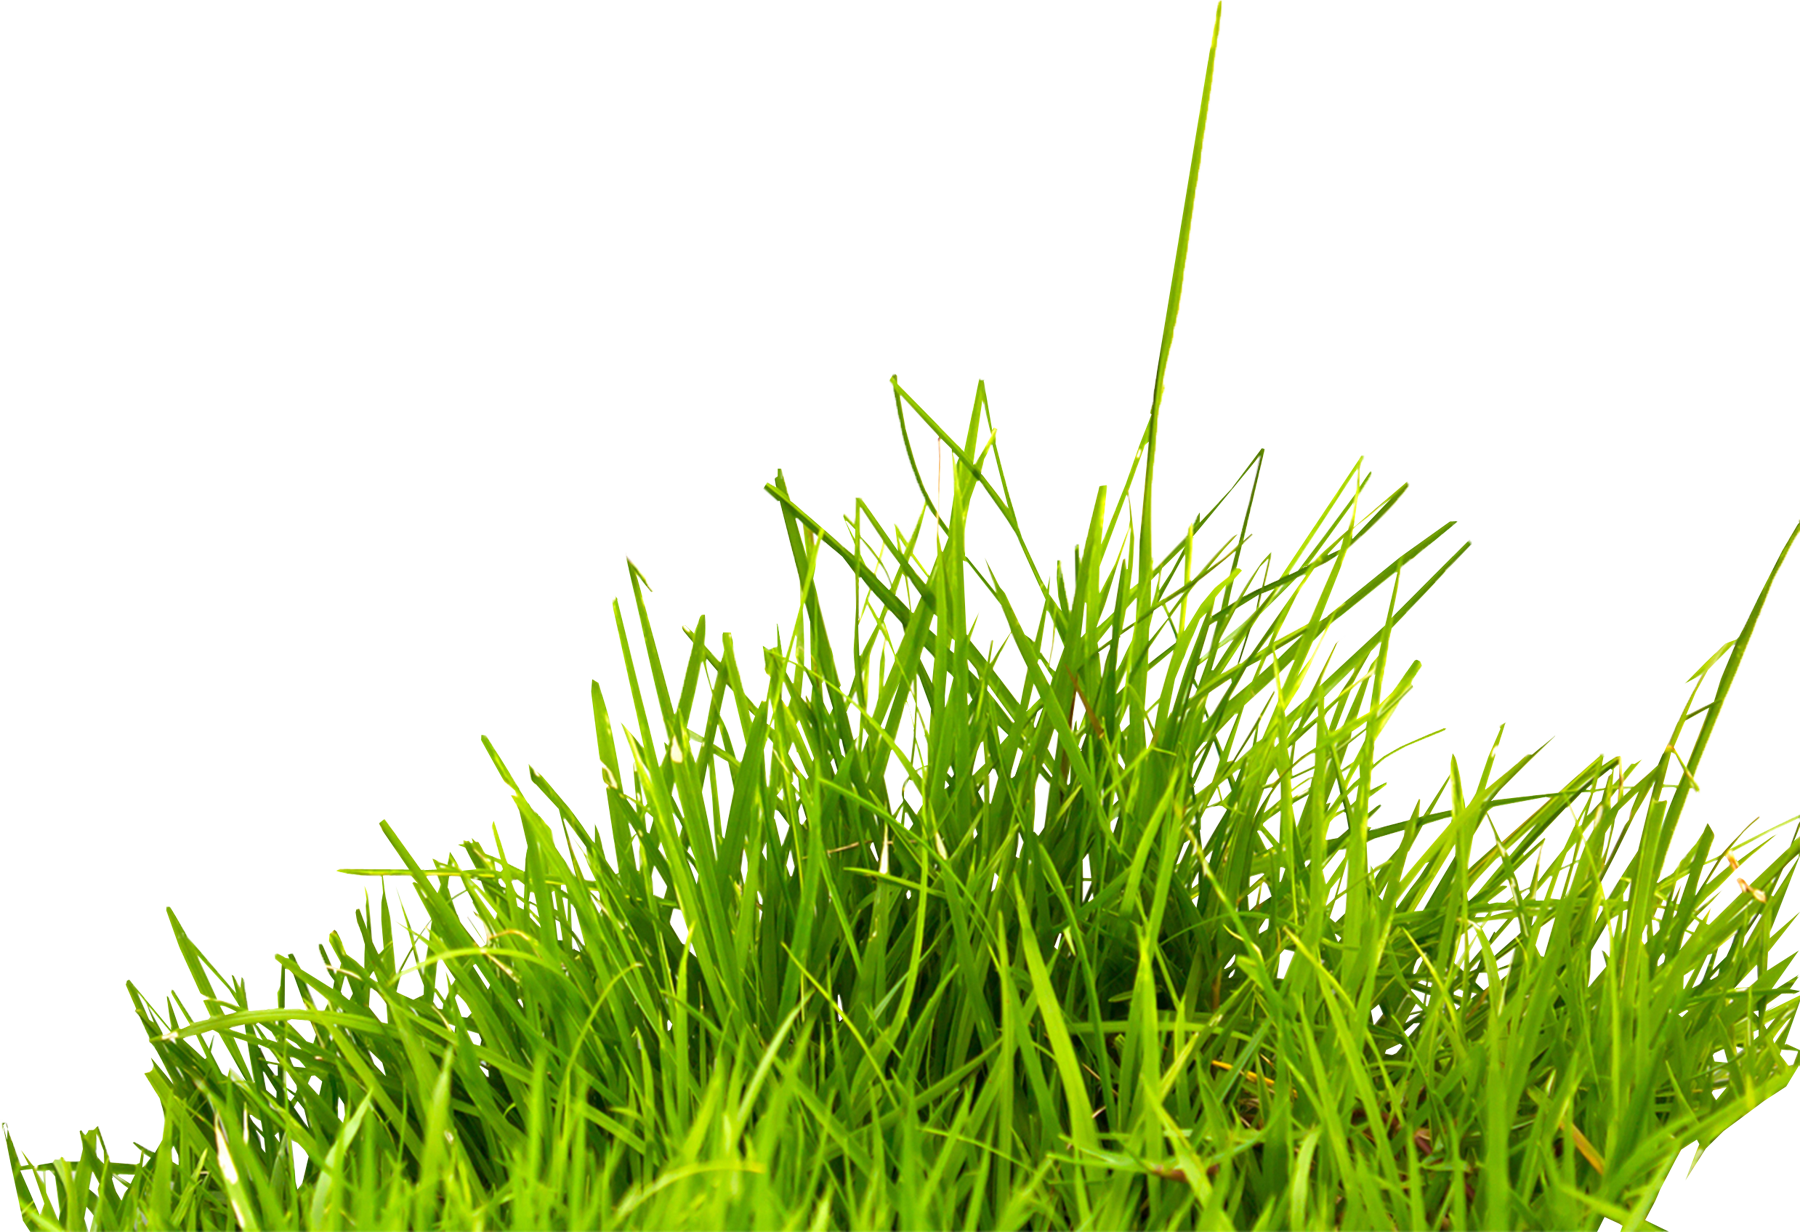 Grass png images. Transparent pluspng image green